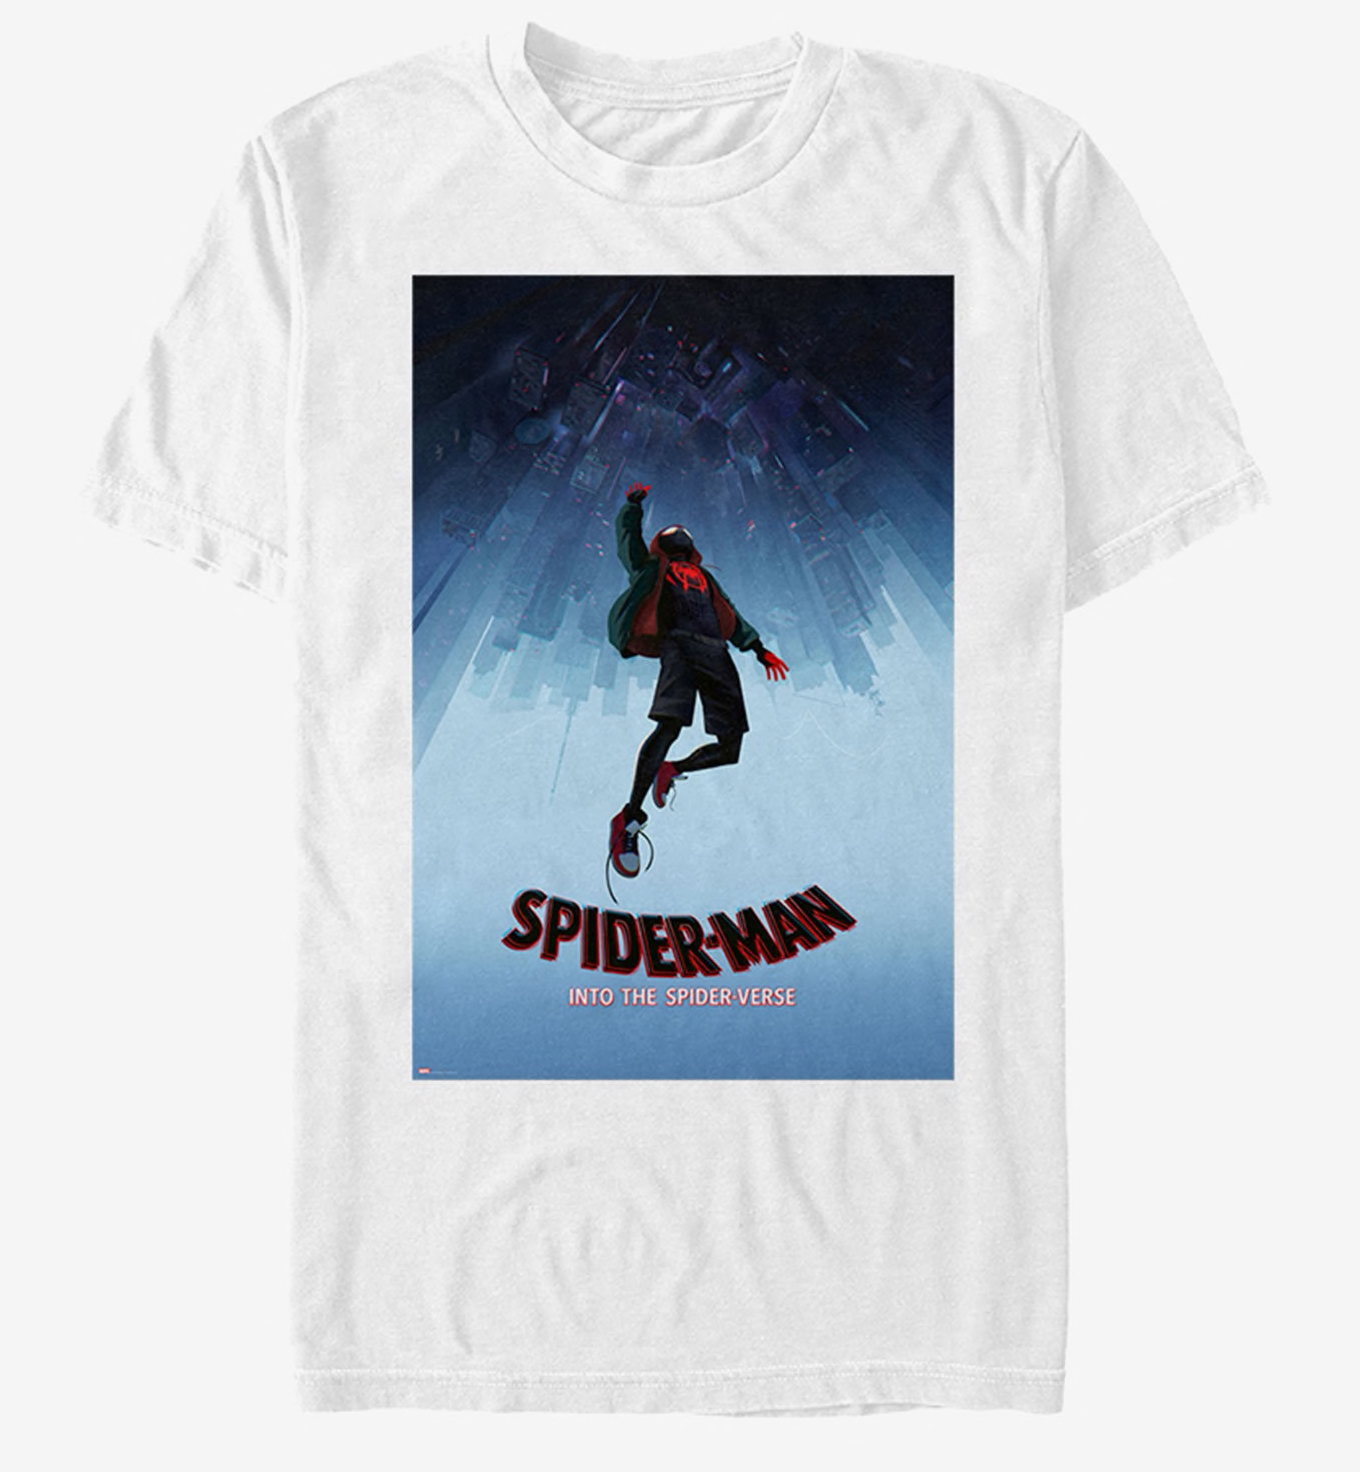 spiderman-spider-verse-shirt-match-jordan-1-origin-story-15